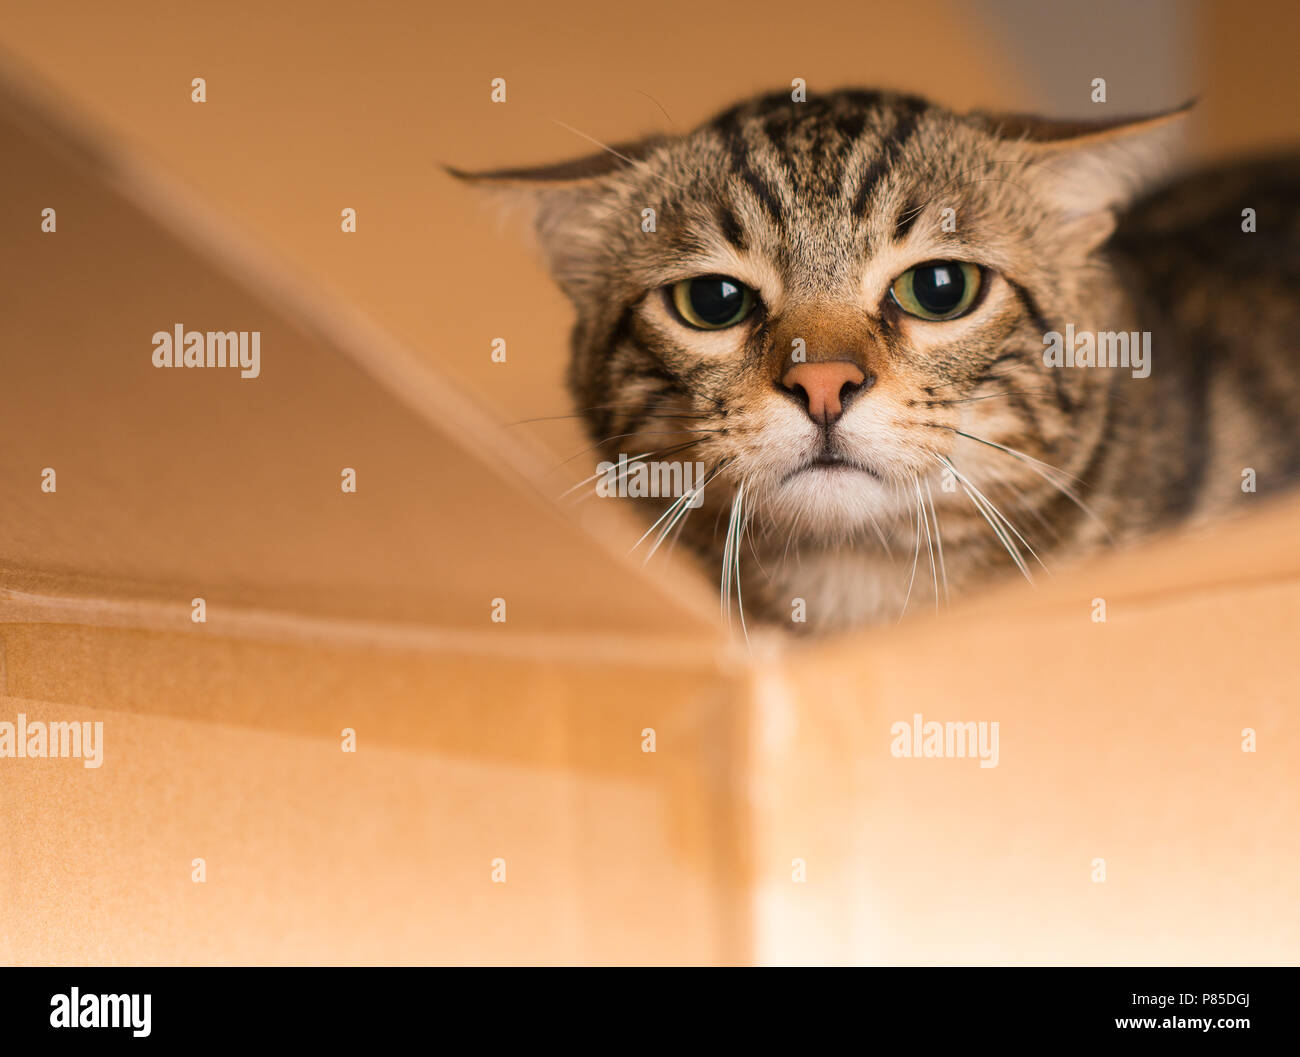 Beautiful cat playing hide and seek in a cardboard box - Stock Image